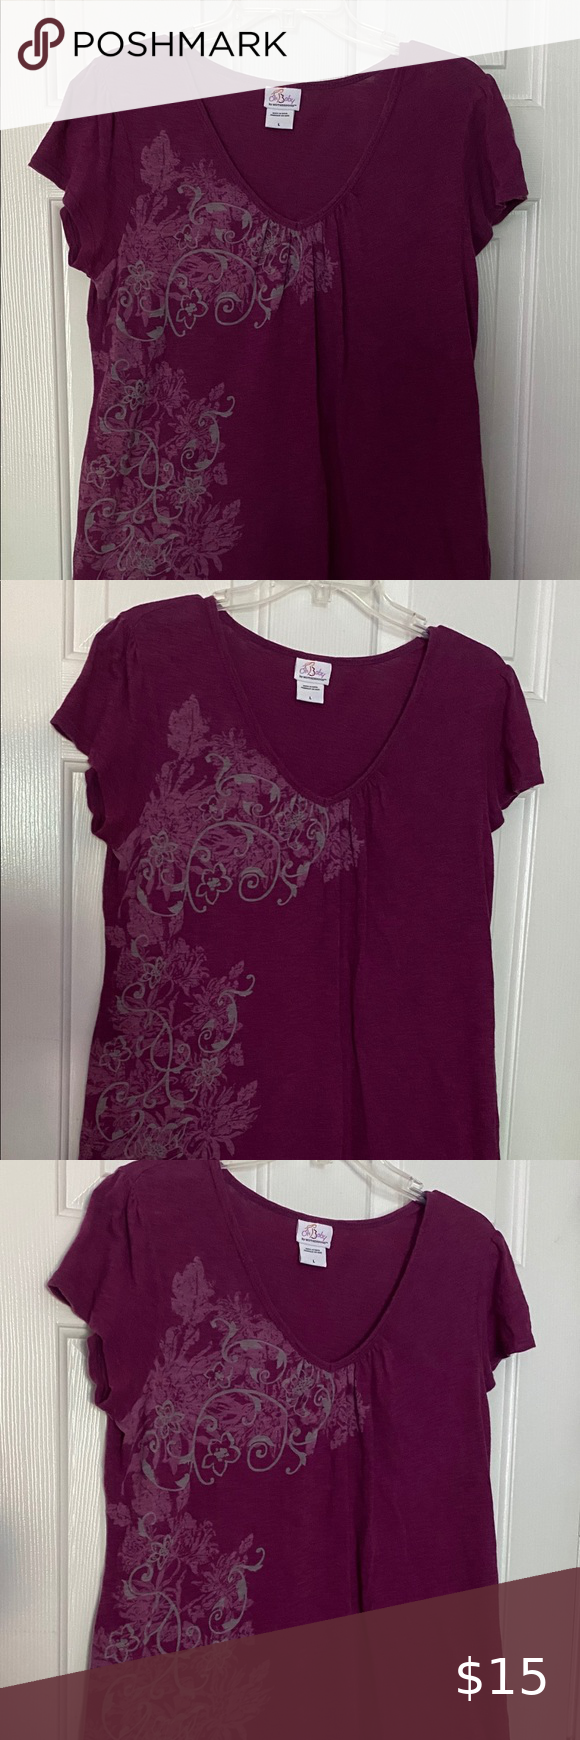 Oh Baby By Motherhood Maternity Top Size Large Maternity Tops Clothes Design Motherhood Maternity